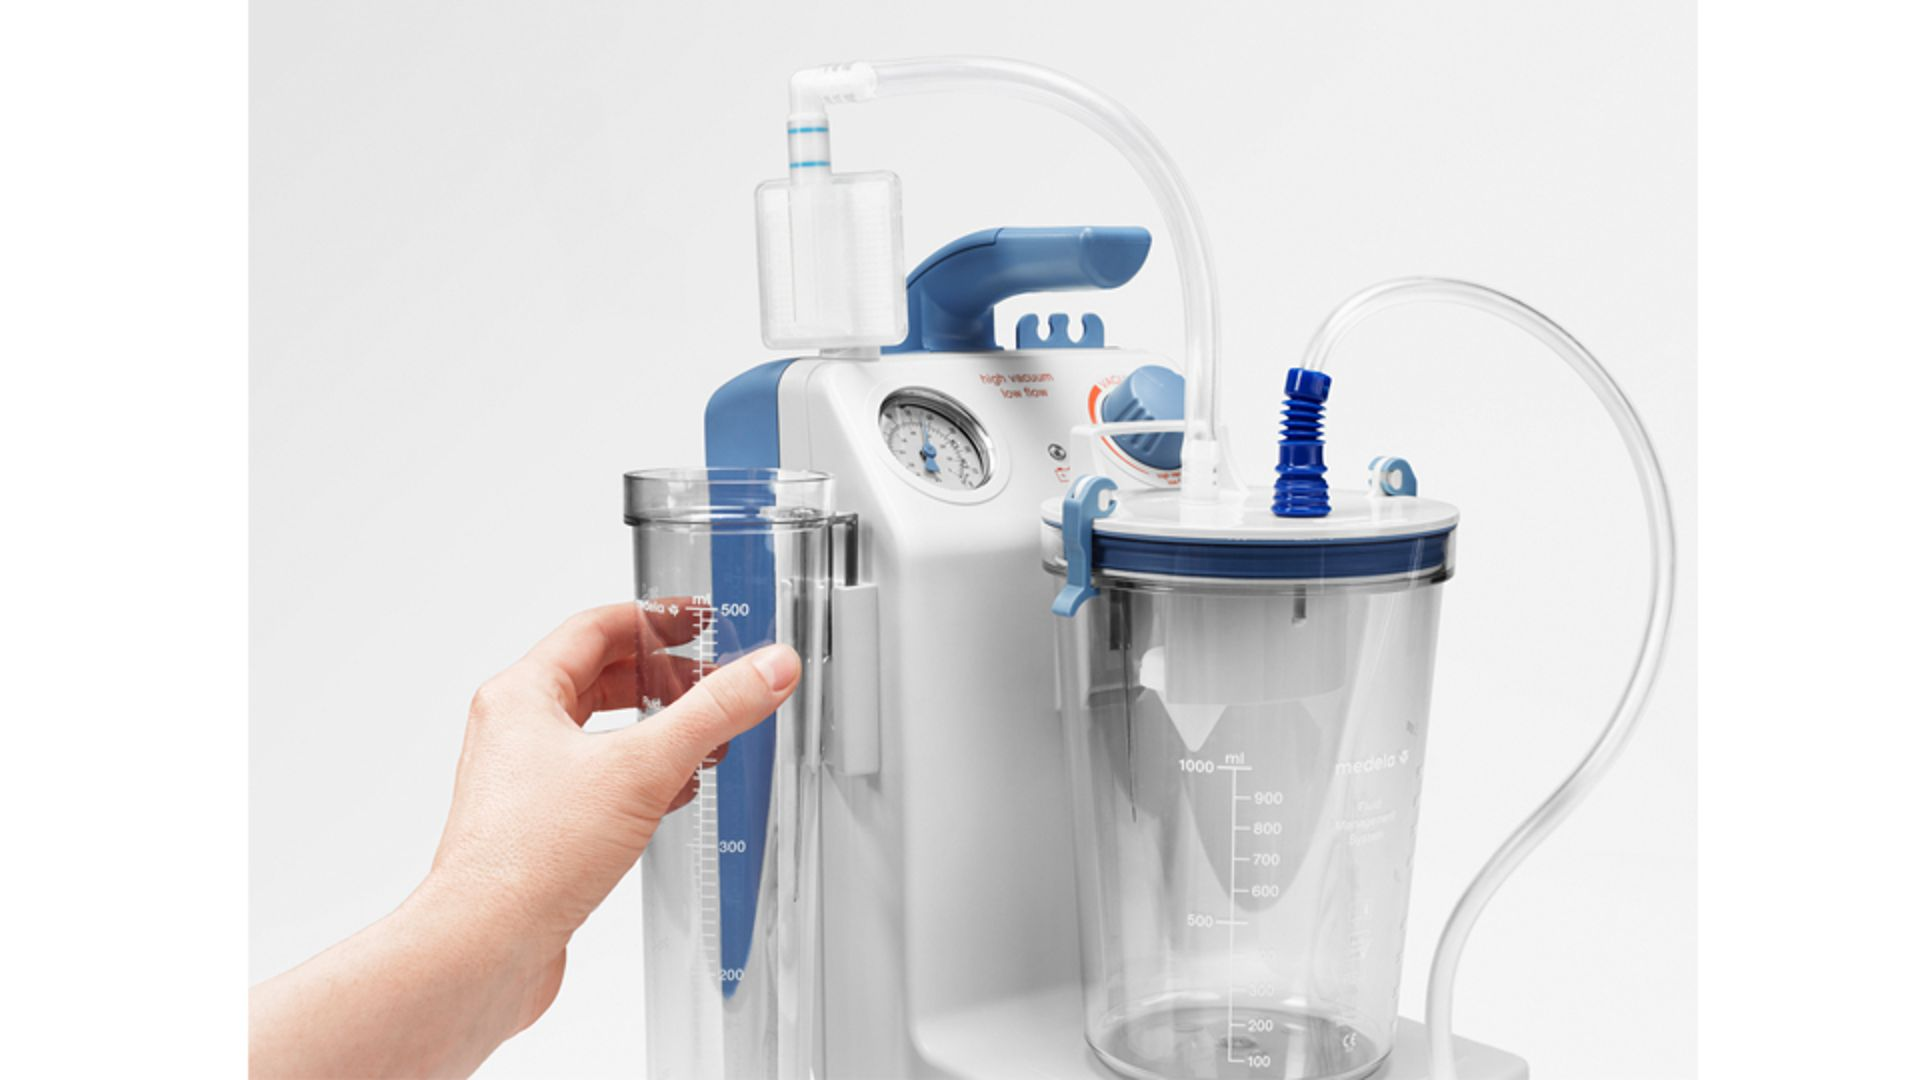 Medela surgical suction Vario 8 in use